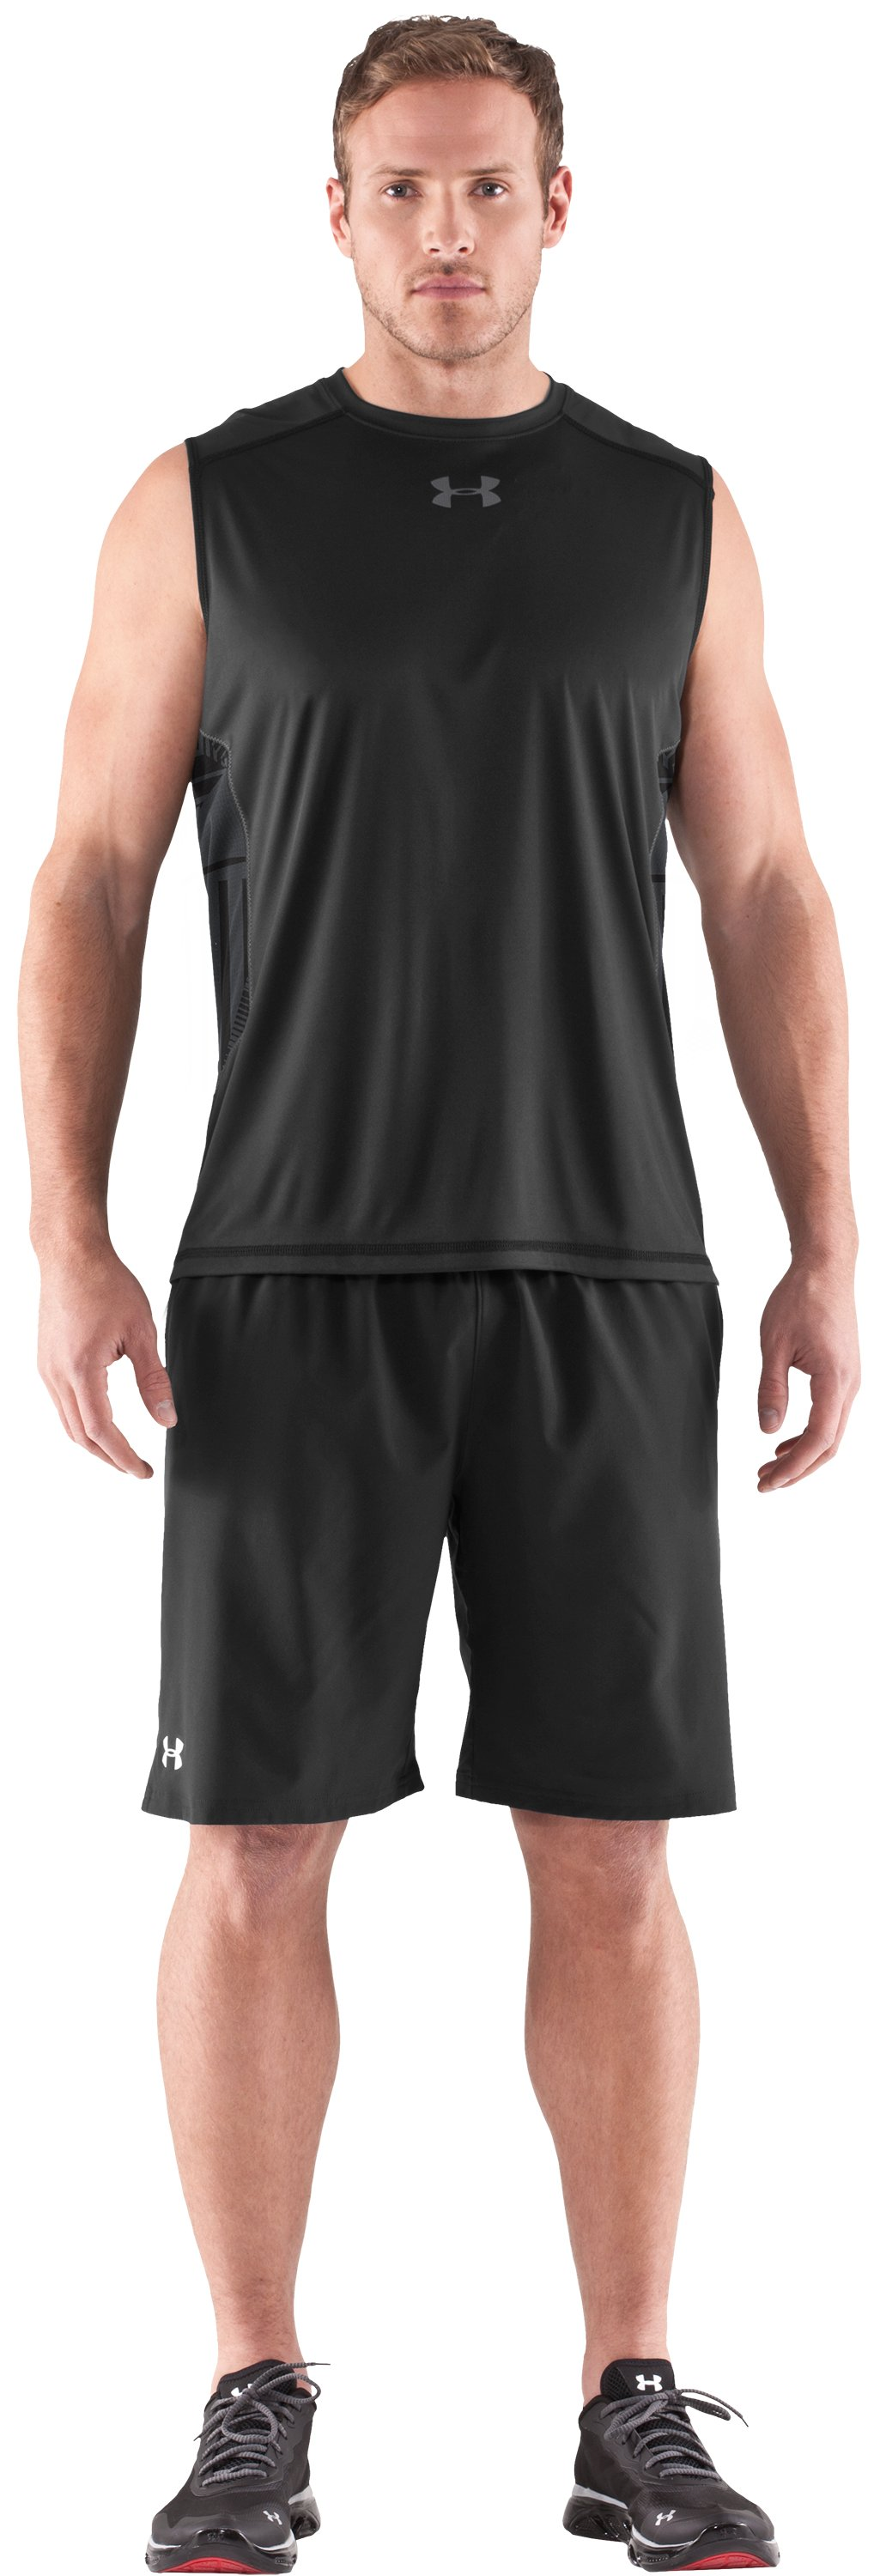 Men's HeatGear® Flyweight Sleeveless, Black